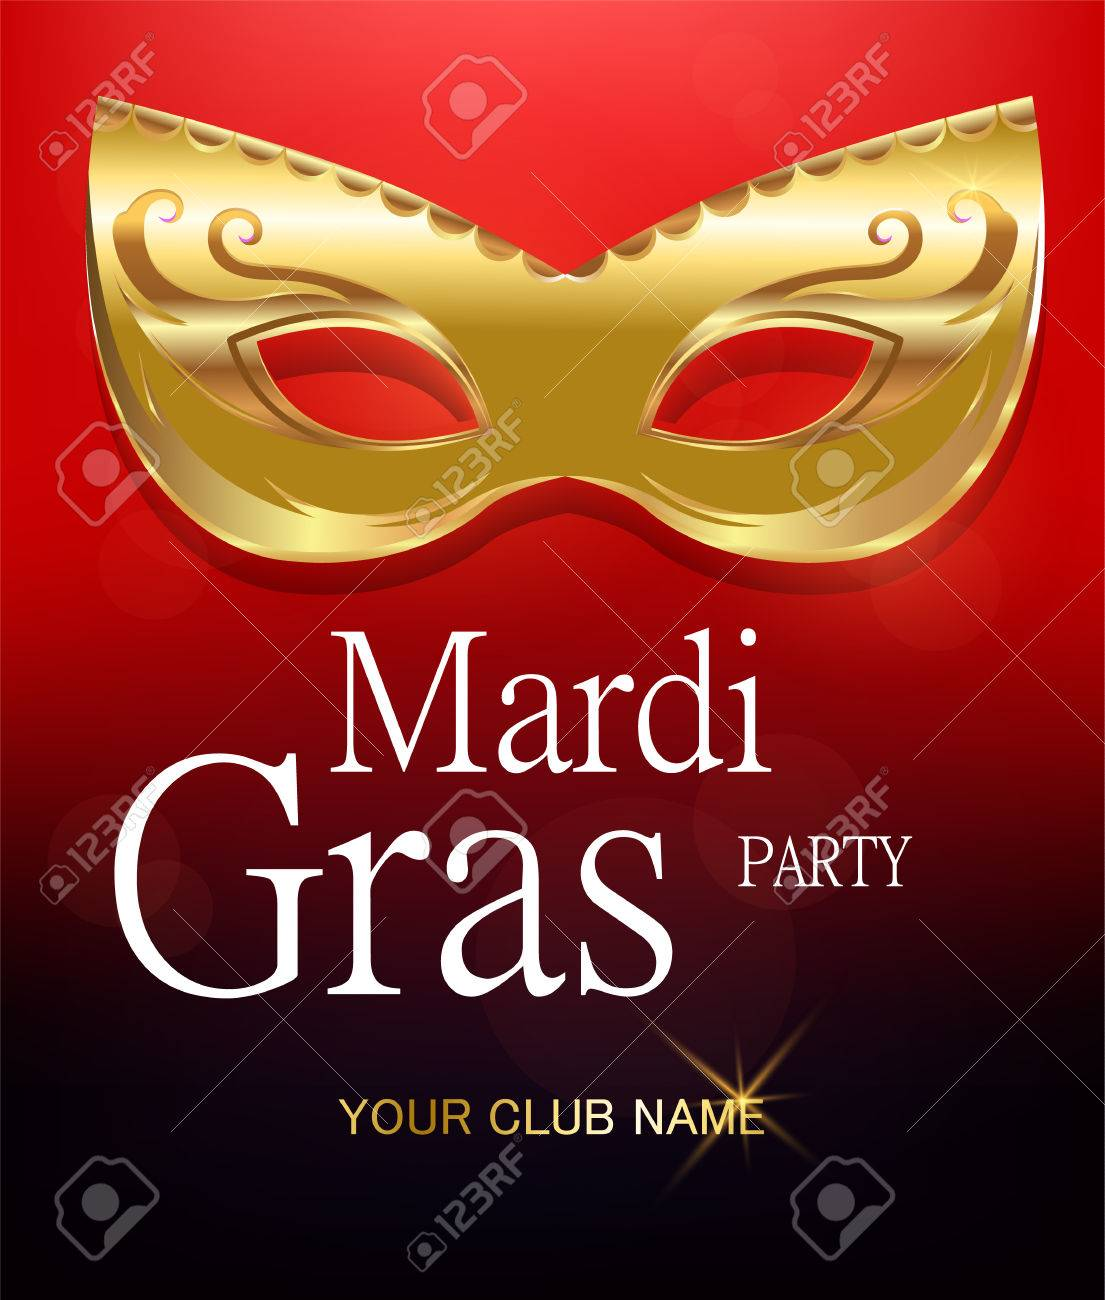 Mardi Gras Golden Carnival Mask With Ornaments For Poster, Greeting ...